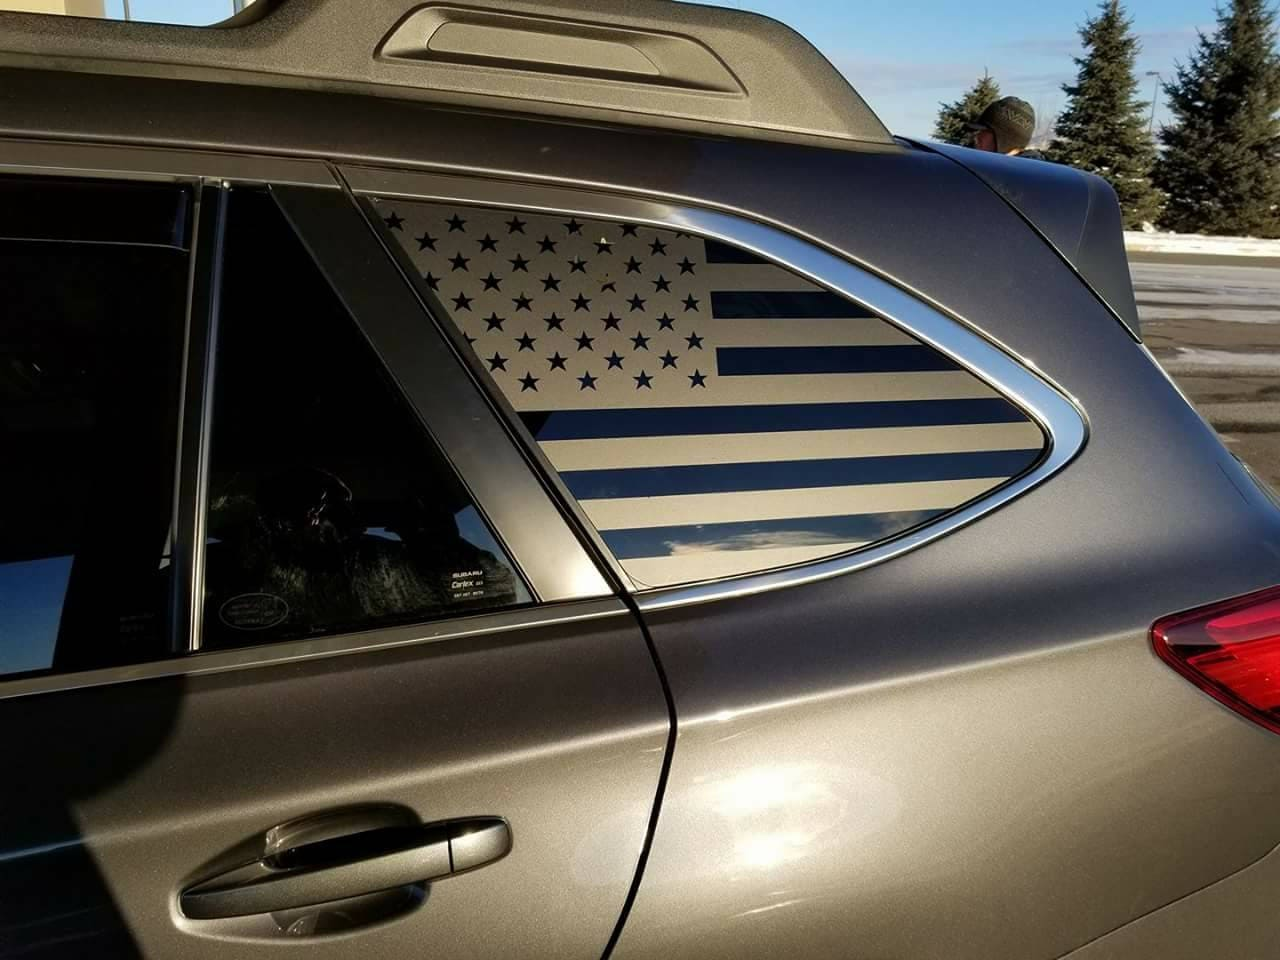 Custom Subaru Outback >> Subaru Outback American Flag Decals 09 Present Stickers Vinyl Usa Us Side Windows Custom Accessories Off Roading Parts Subie Forester